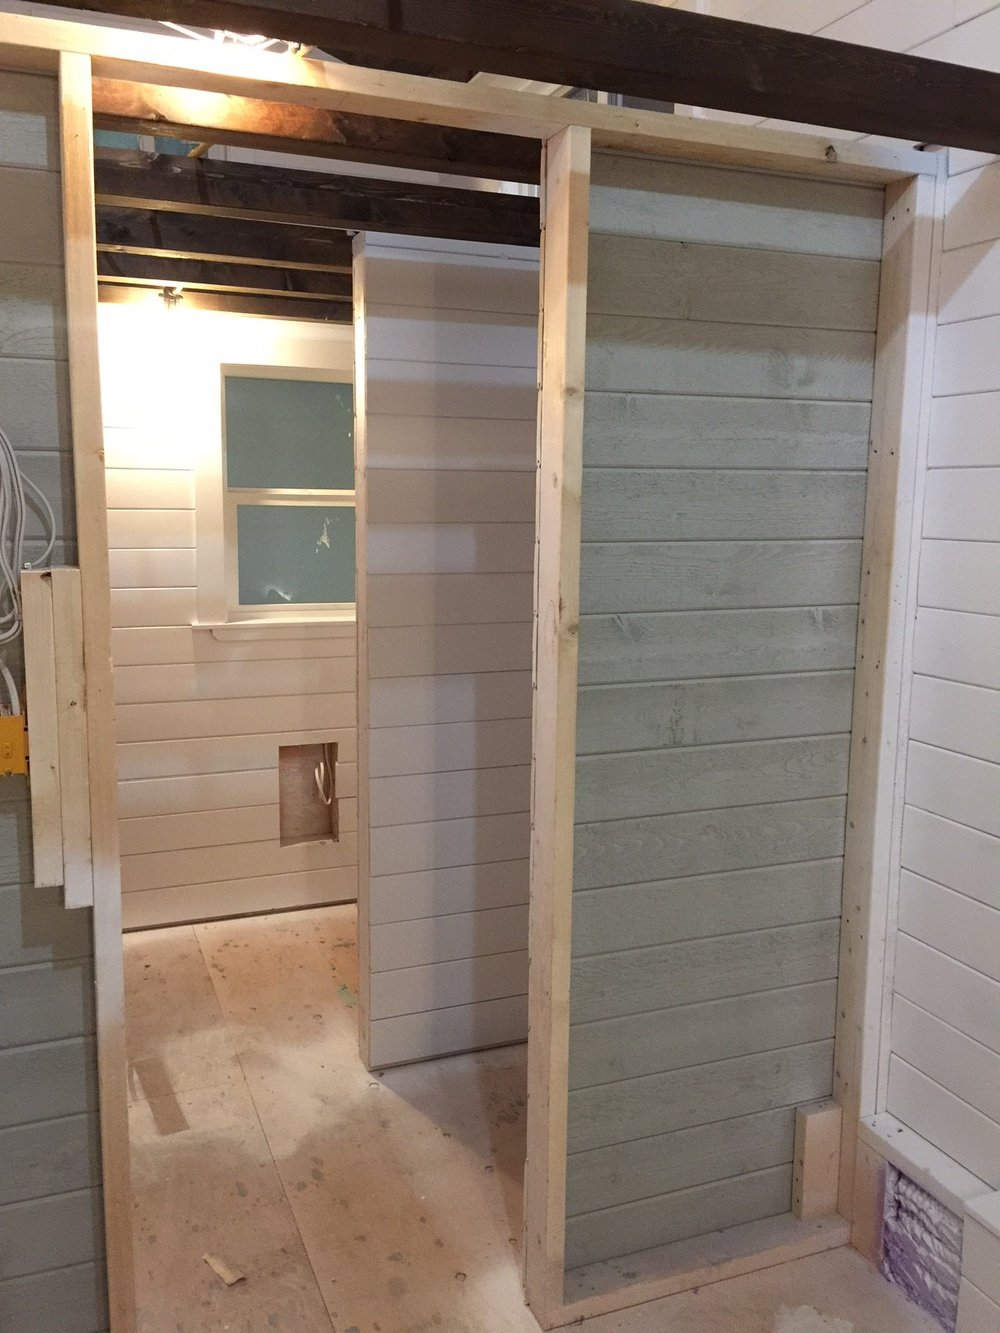 Home Interior bathroom and closet.jpg